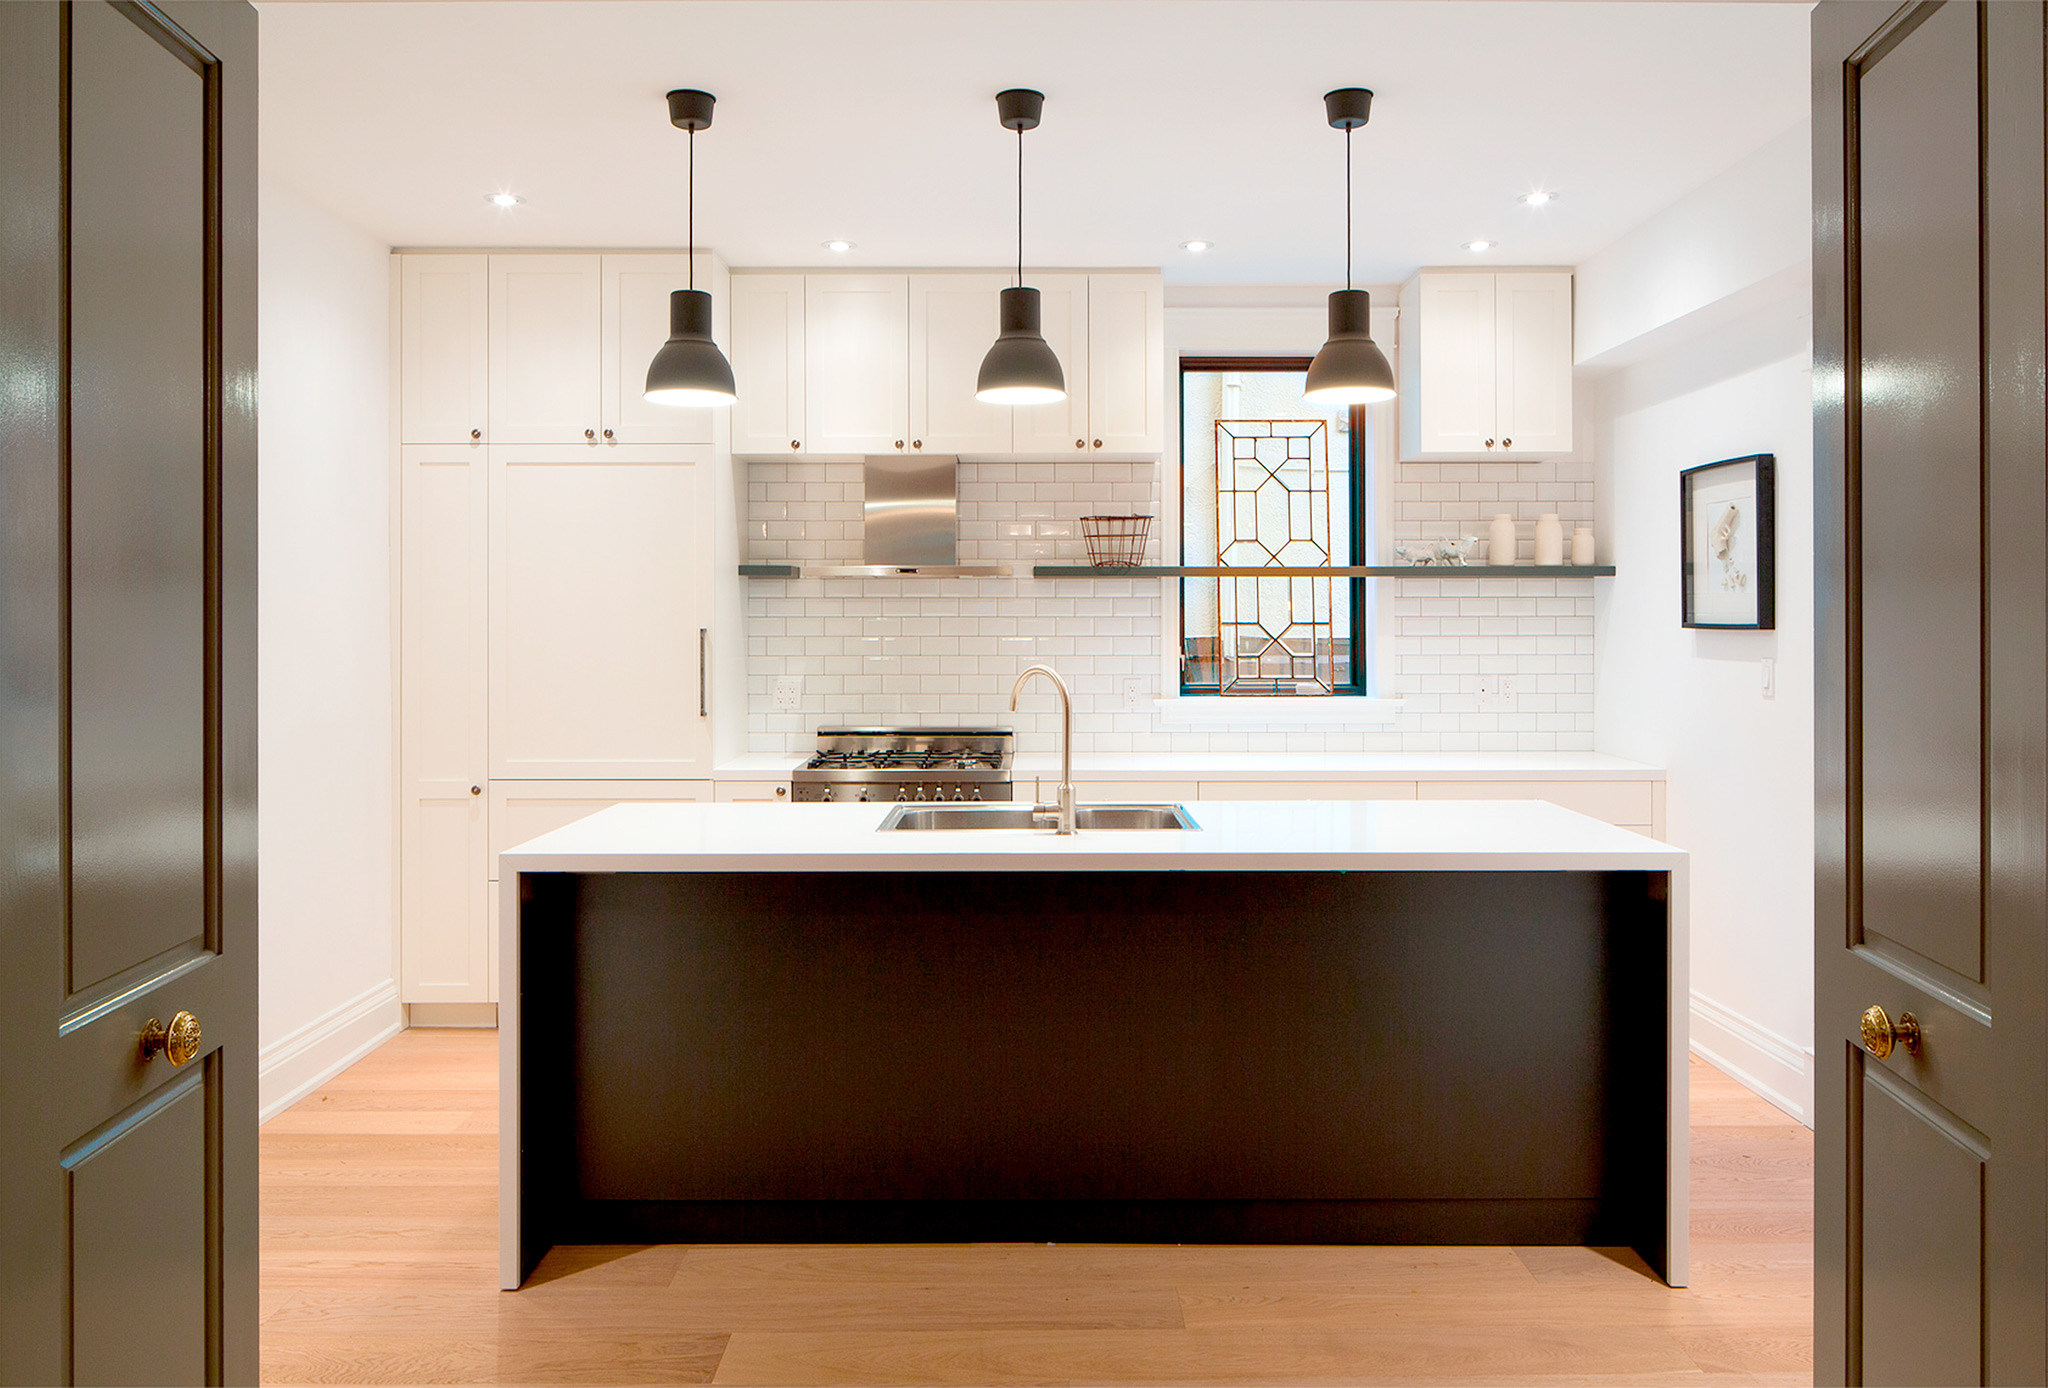 GlenRd_kitchen2